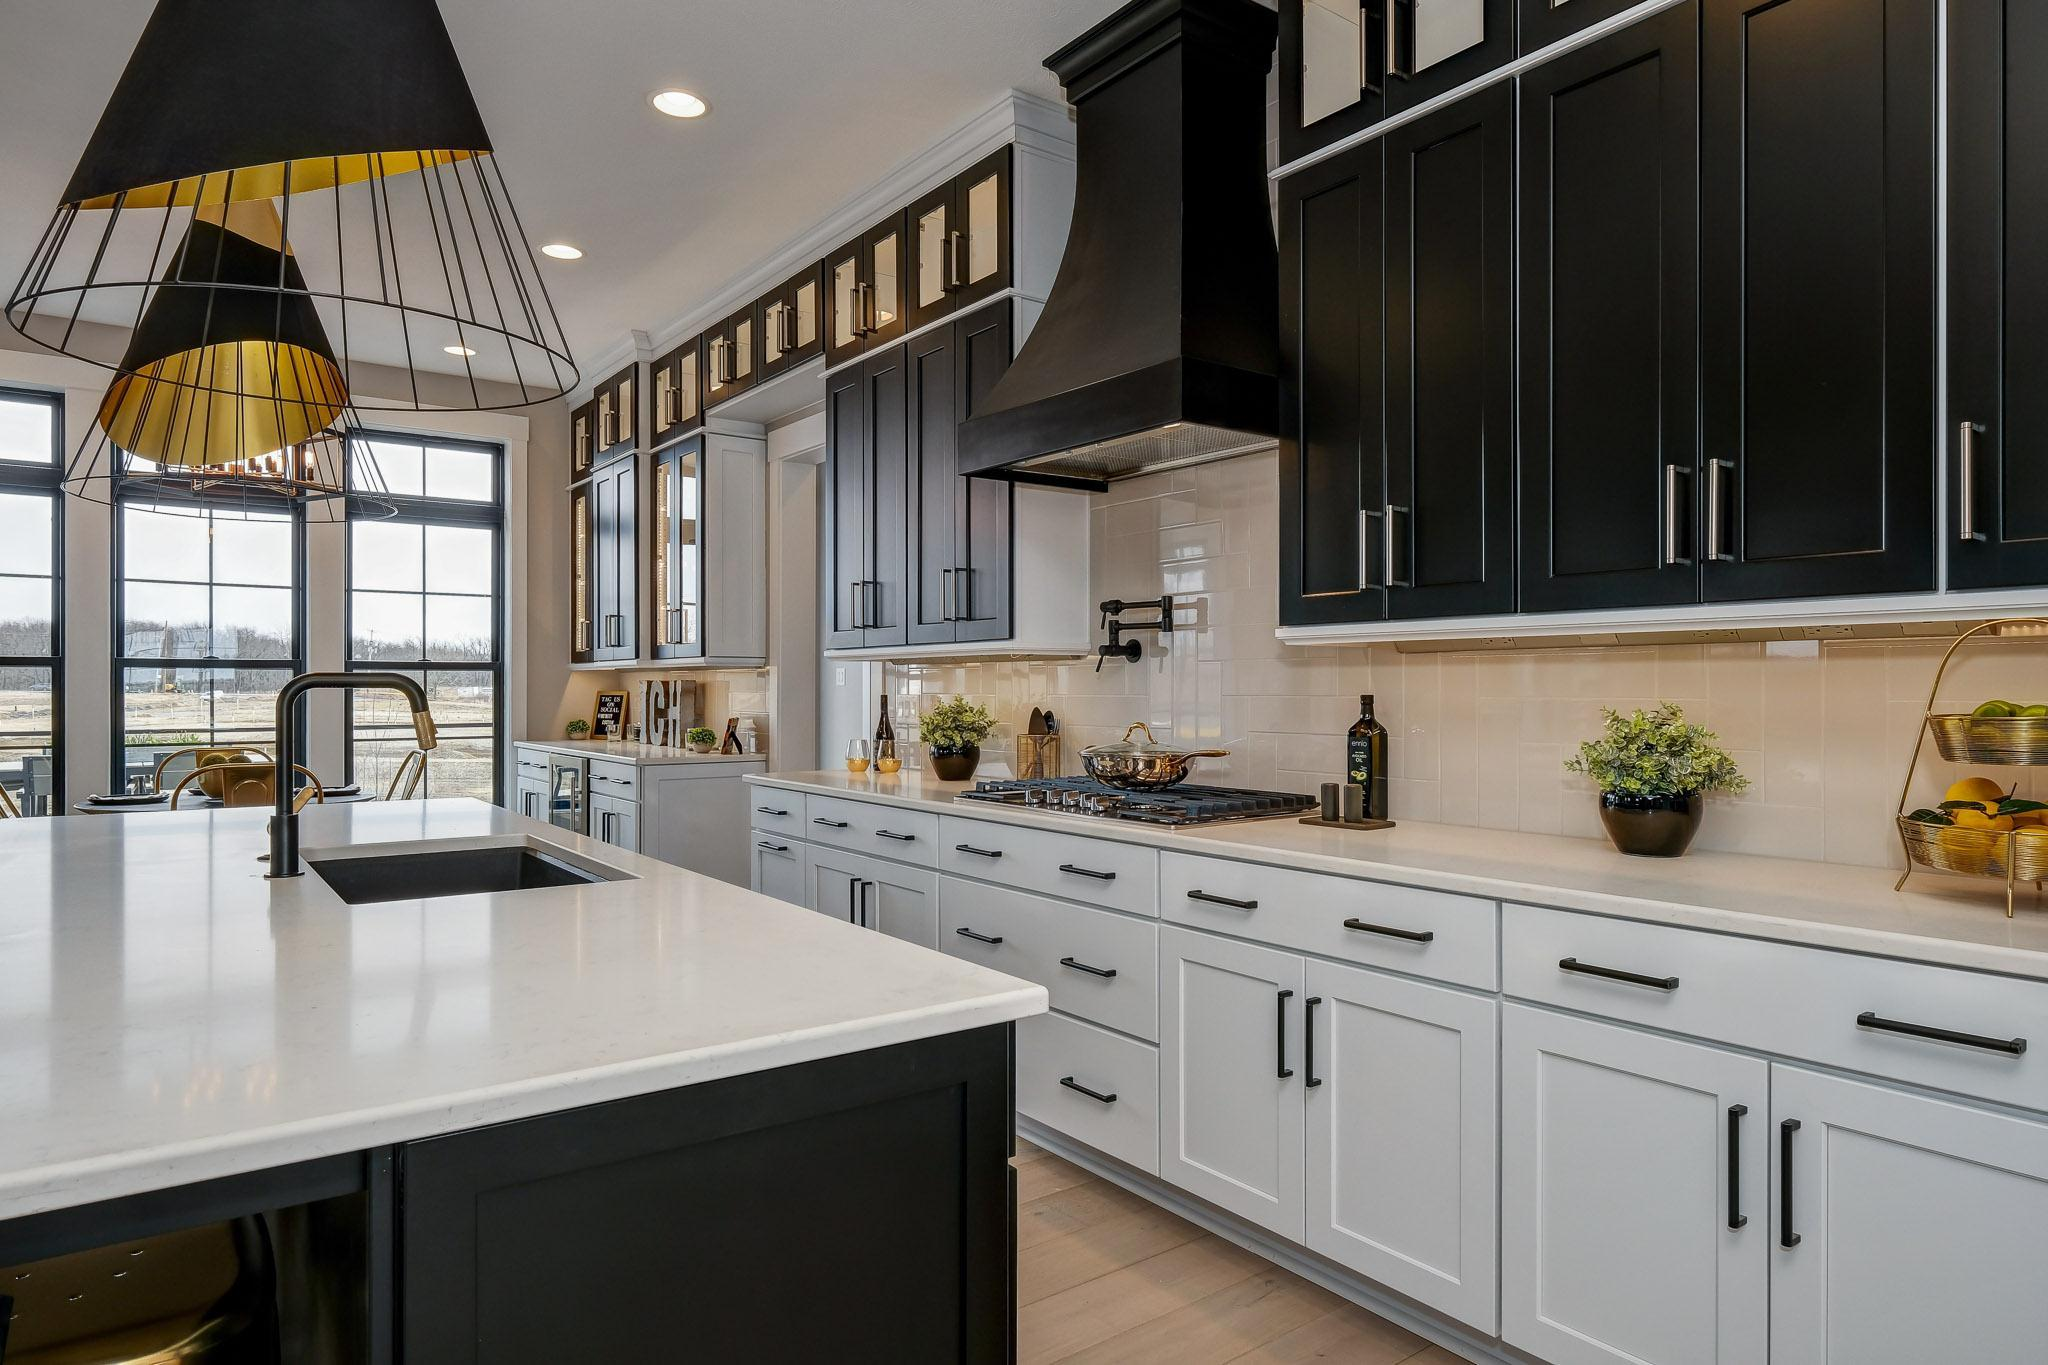 Kitchen featured in the Napa By Infinity Custom Homes in Pittsburgh, PA